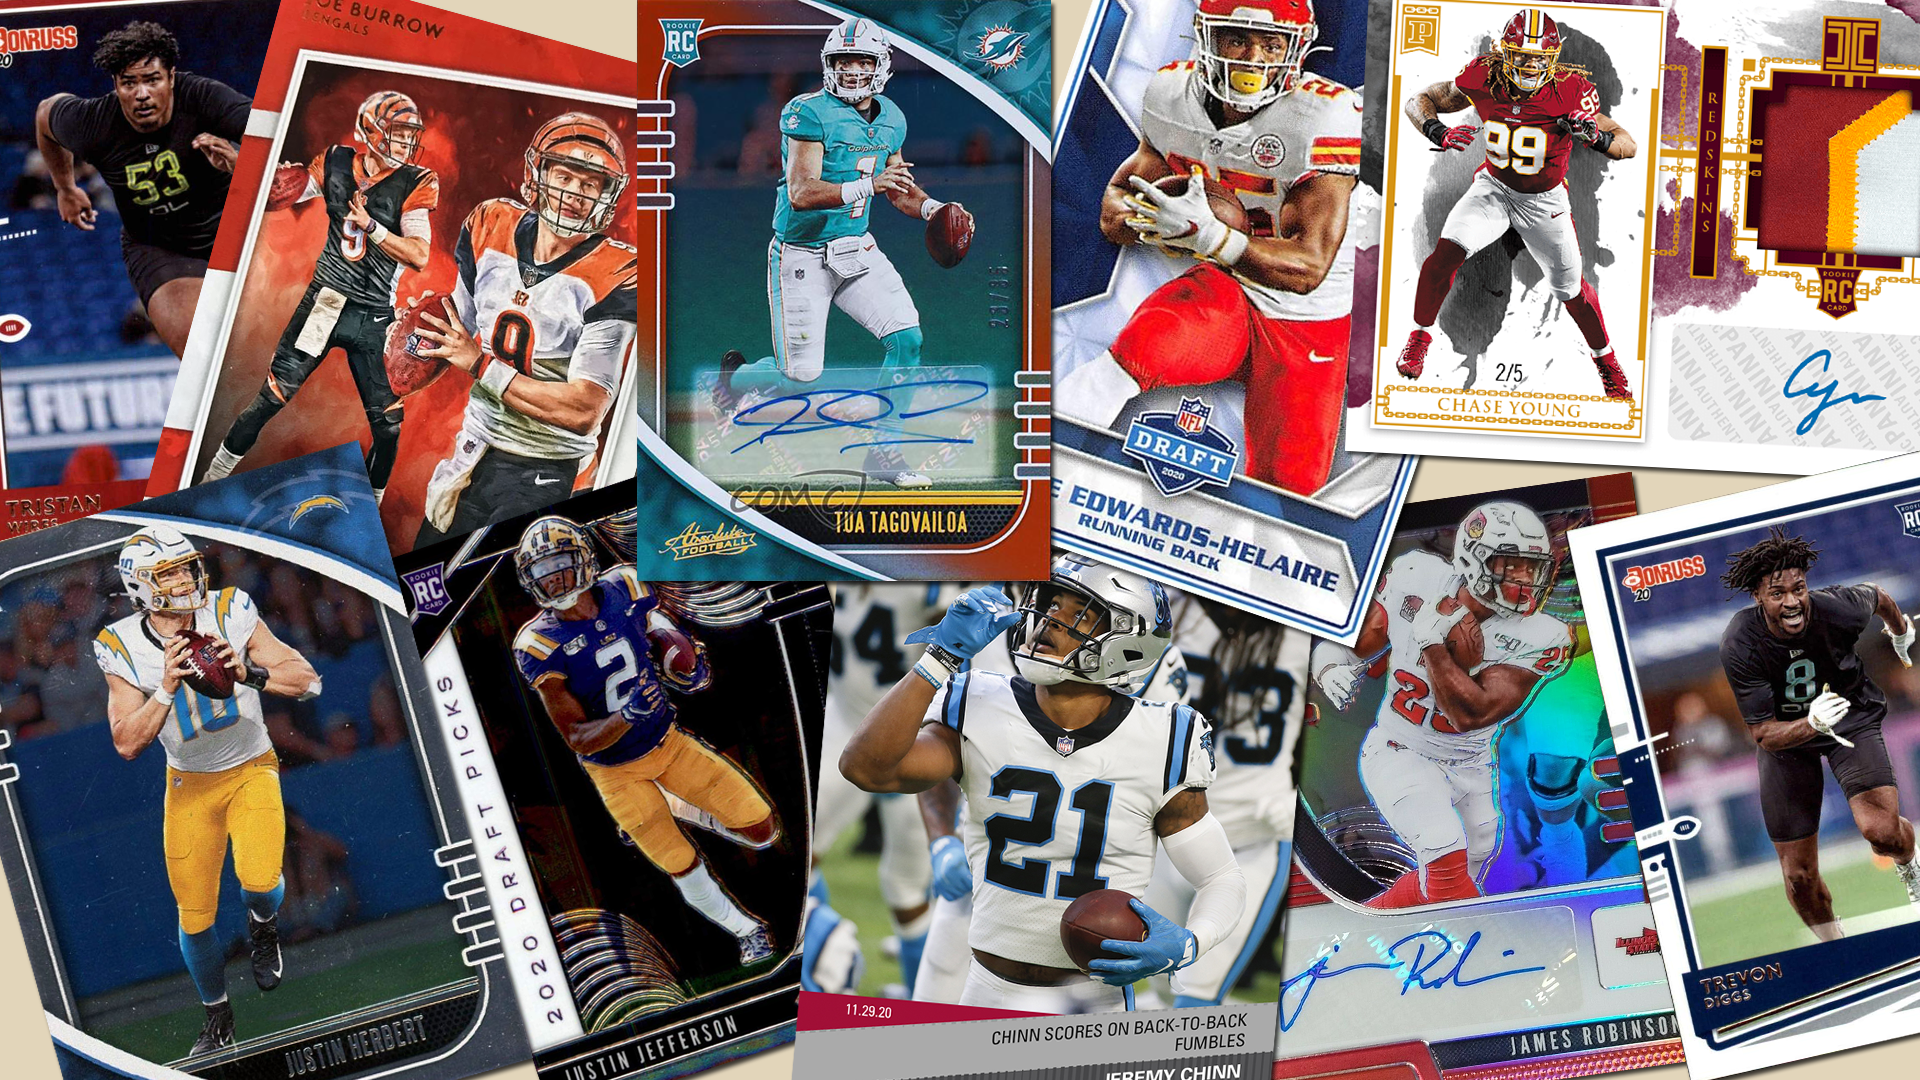 10 football cards scattered across the table top featuring the top rookies